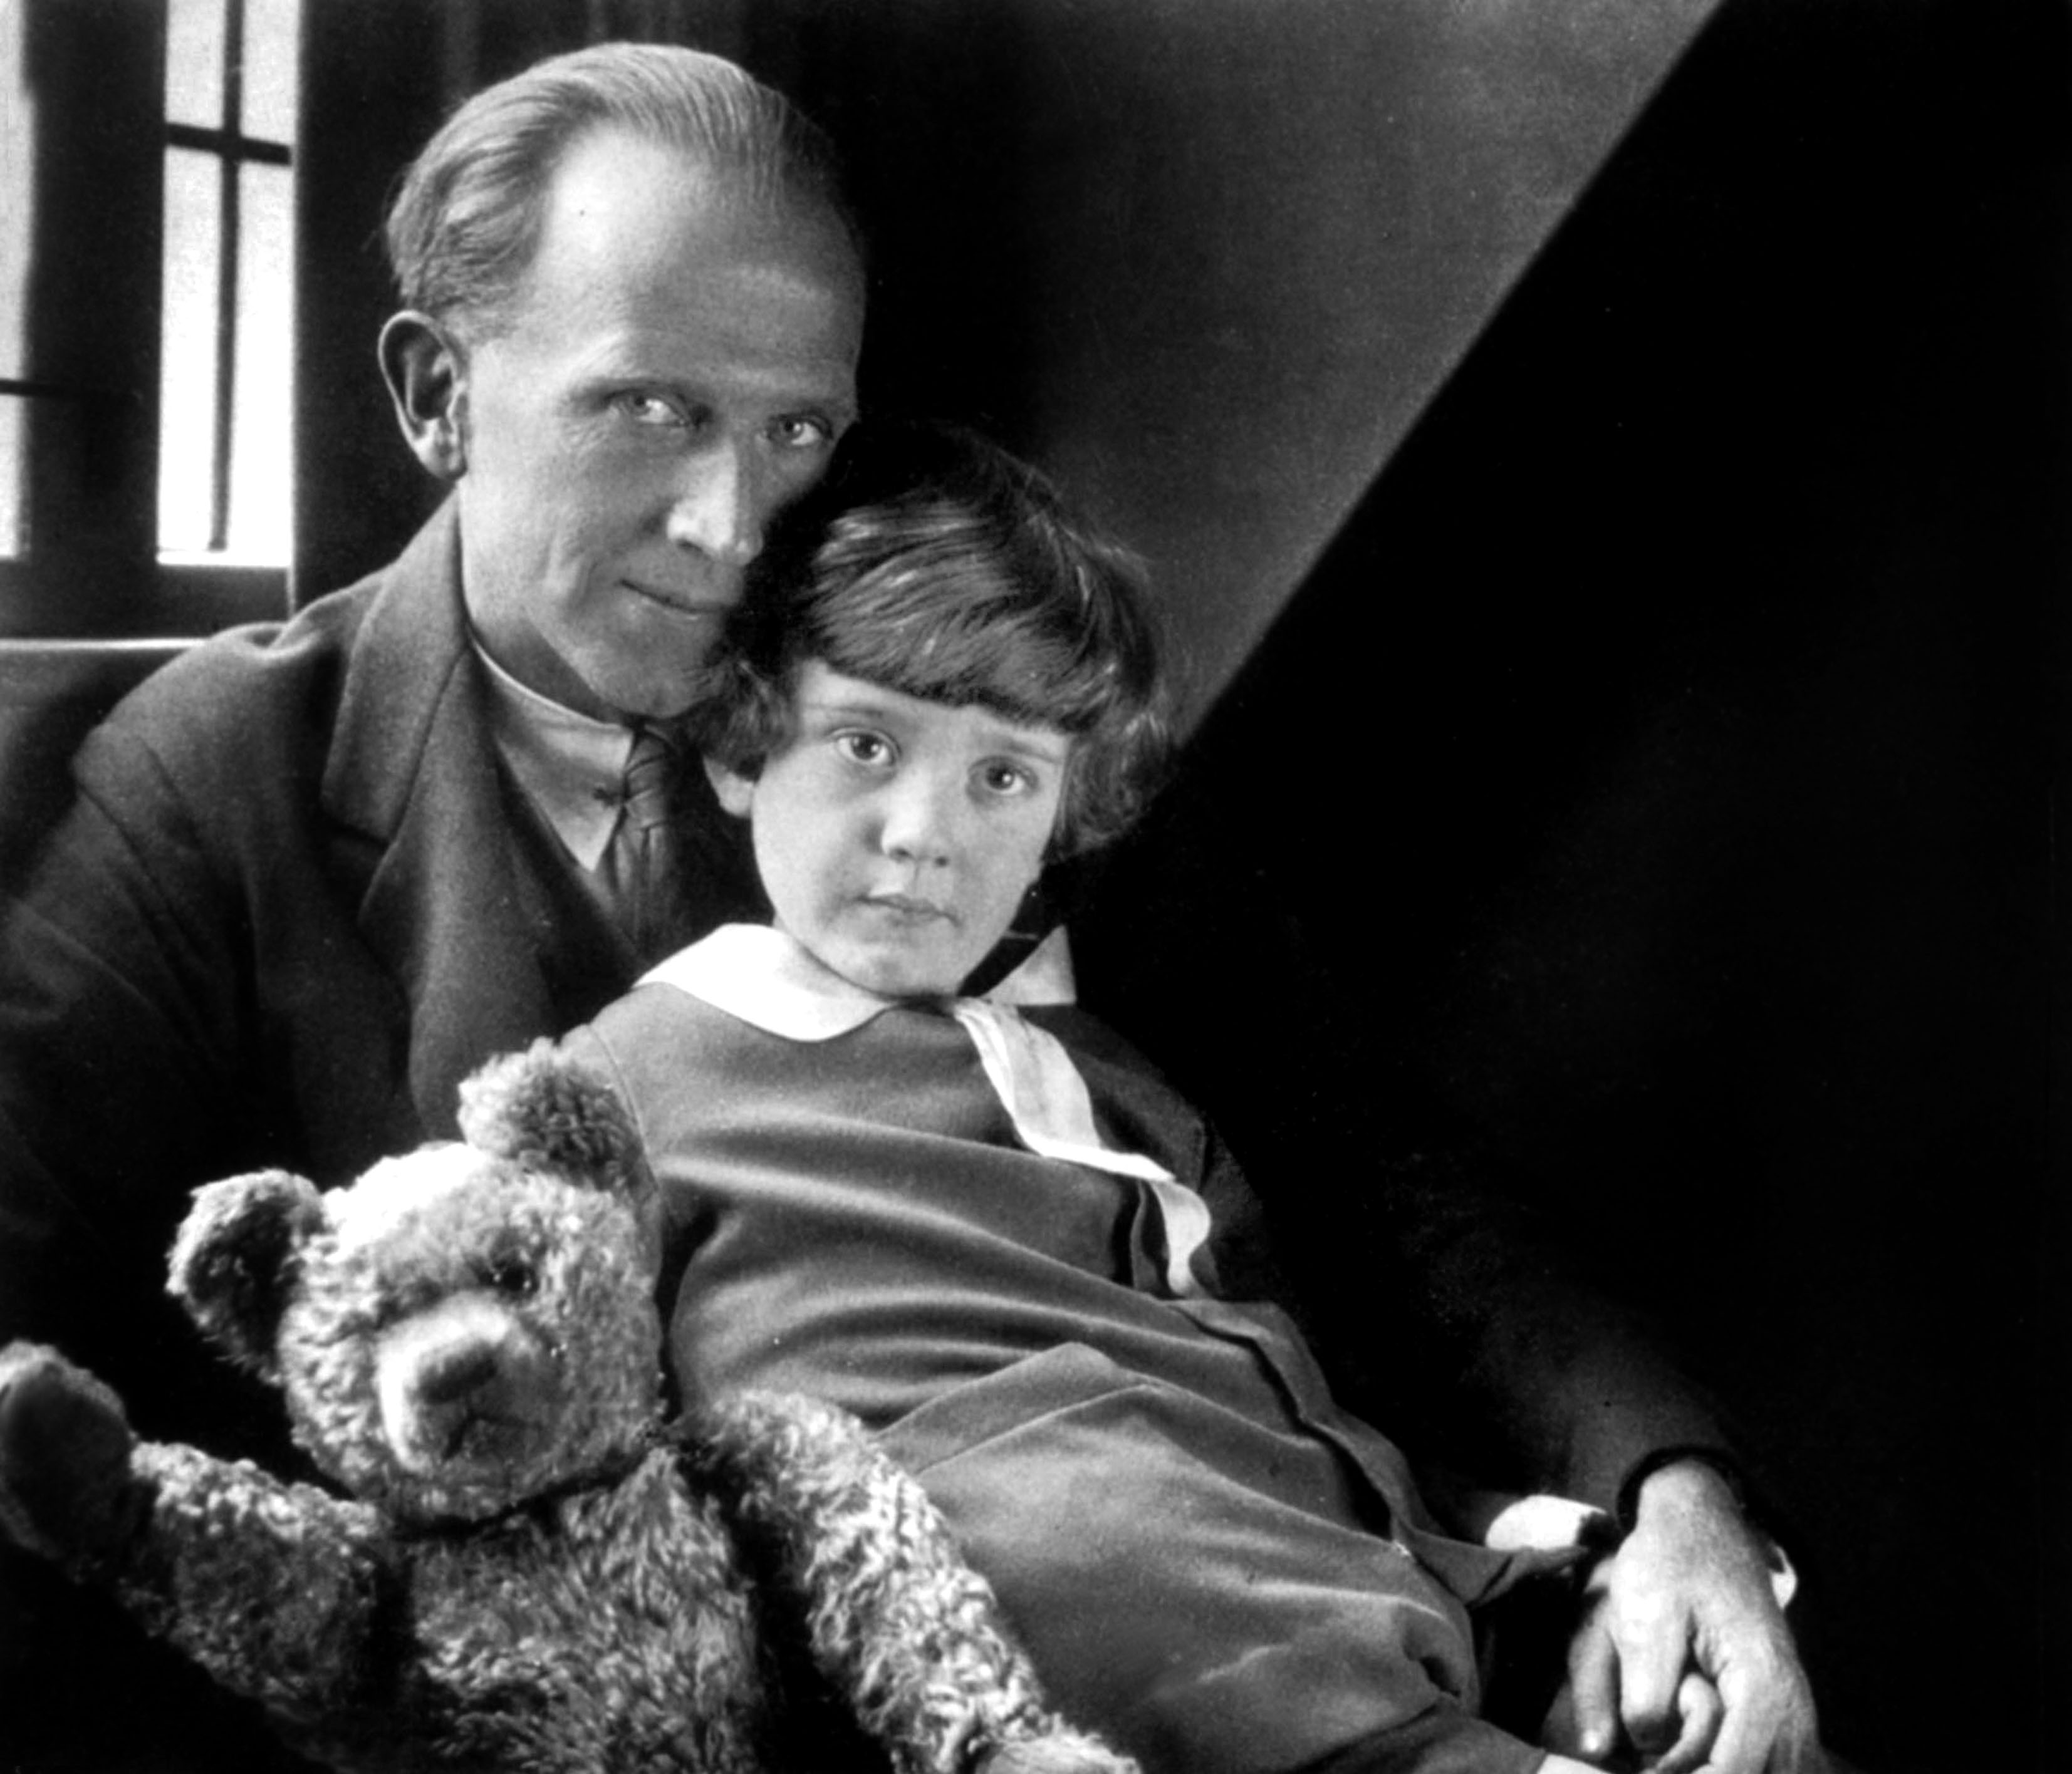 A.A. Milne, author of the story Winnie the Pooh, with his son Christopher Robin.